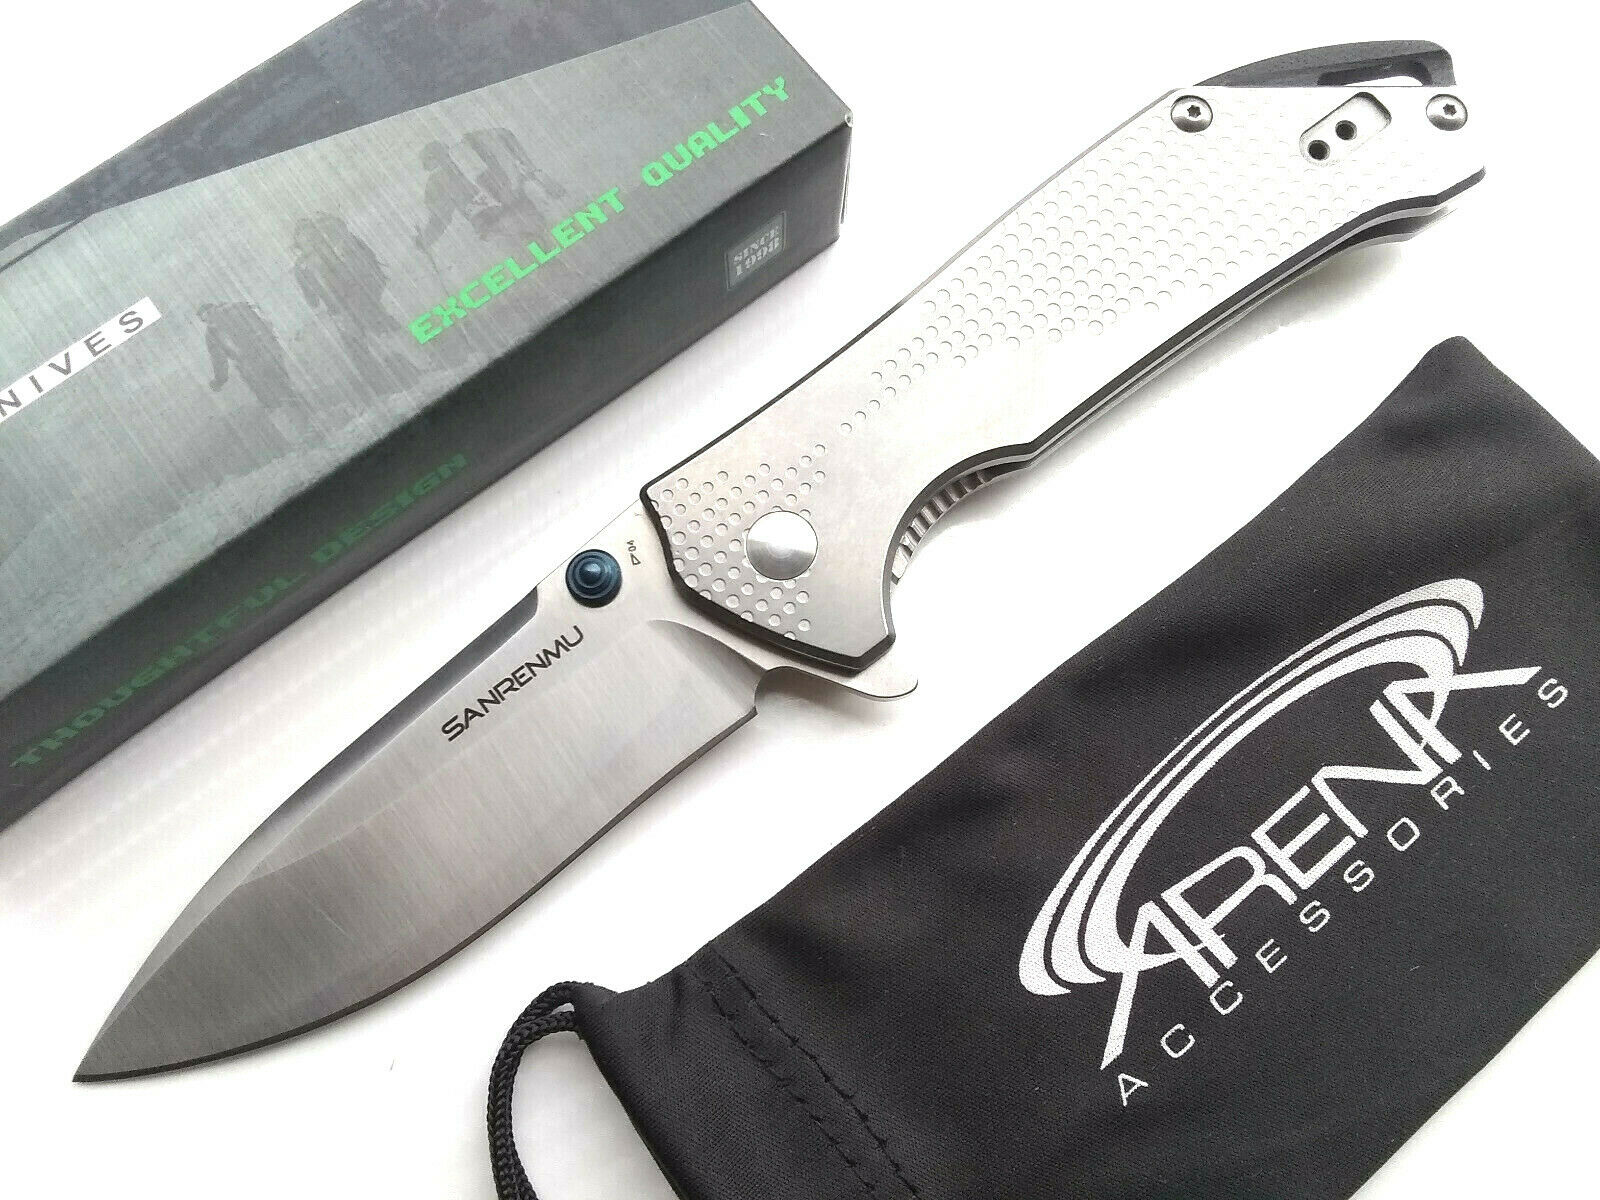 Sanrenmu 9015 Ball Bearing Flipper Pocket Knife 12C27 Sandvik Steel With Safety Frame Lock EDC